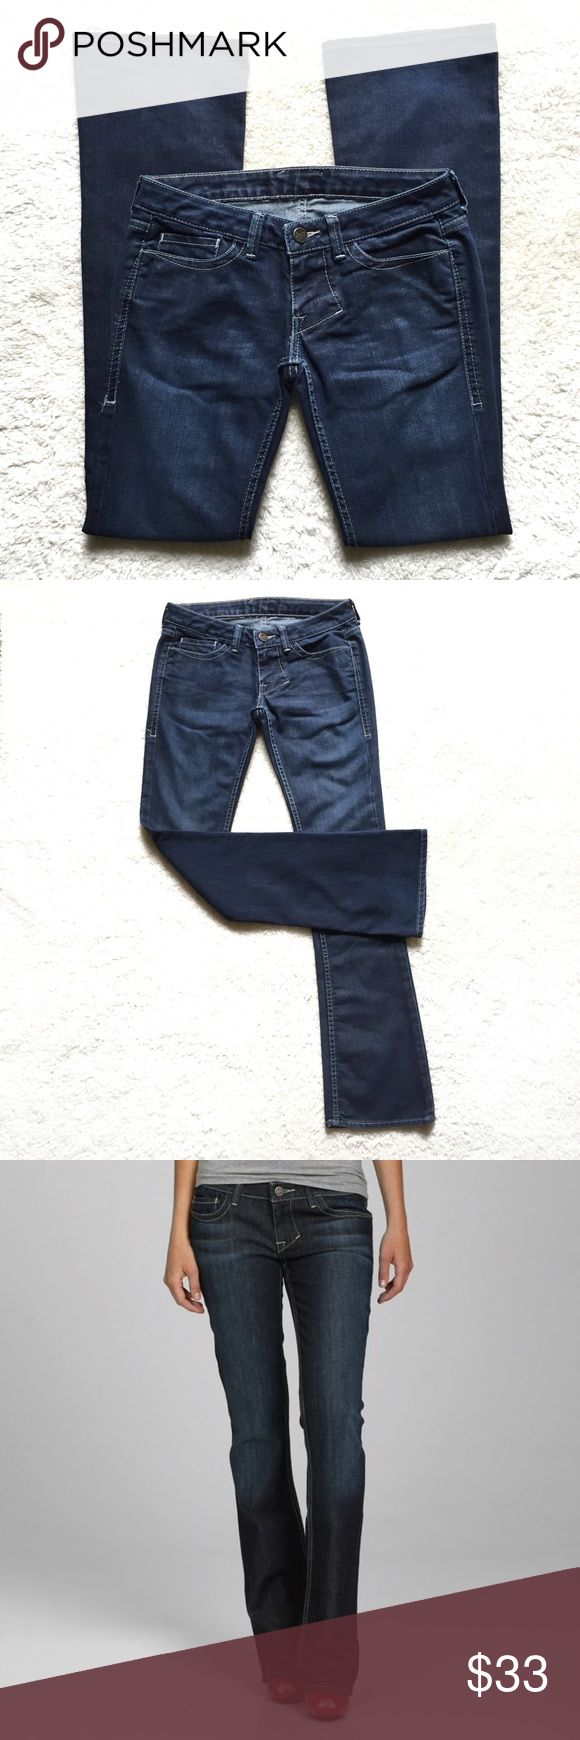 """William Rast Stella Bootcut Jeans Soft, dark blue classic bootcut denim with cream contrast stitching and light stretch. Whiskering along front pockets. Five-pocket styling with zip fly and belt loops. 75% cotton; 25% polyester. Size 26. Waist: 14.5"""" flat across.  Rise: 6.5"""".  Inseam: 33"""".  Leg opening: 8"""" across. The inside tags have peeled off and these have some light wear. Very Good Conition. William Rast Jeans Boot Cut"""